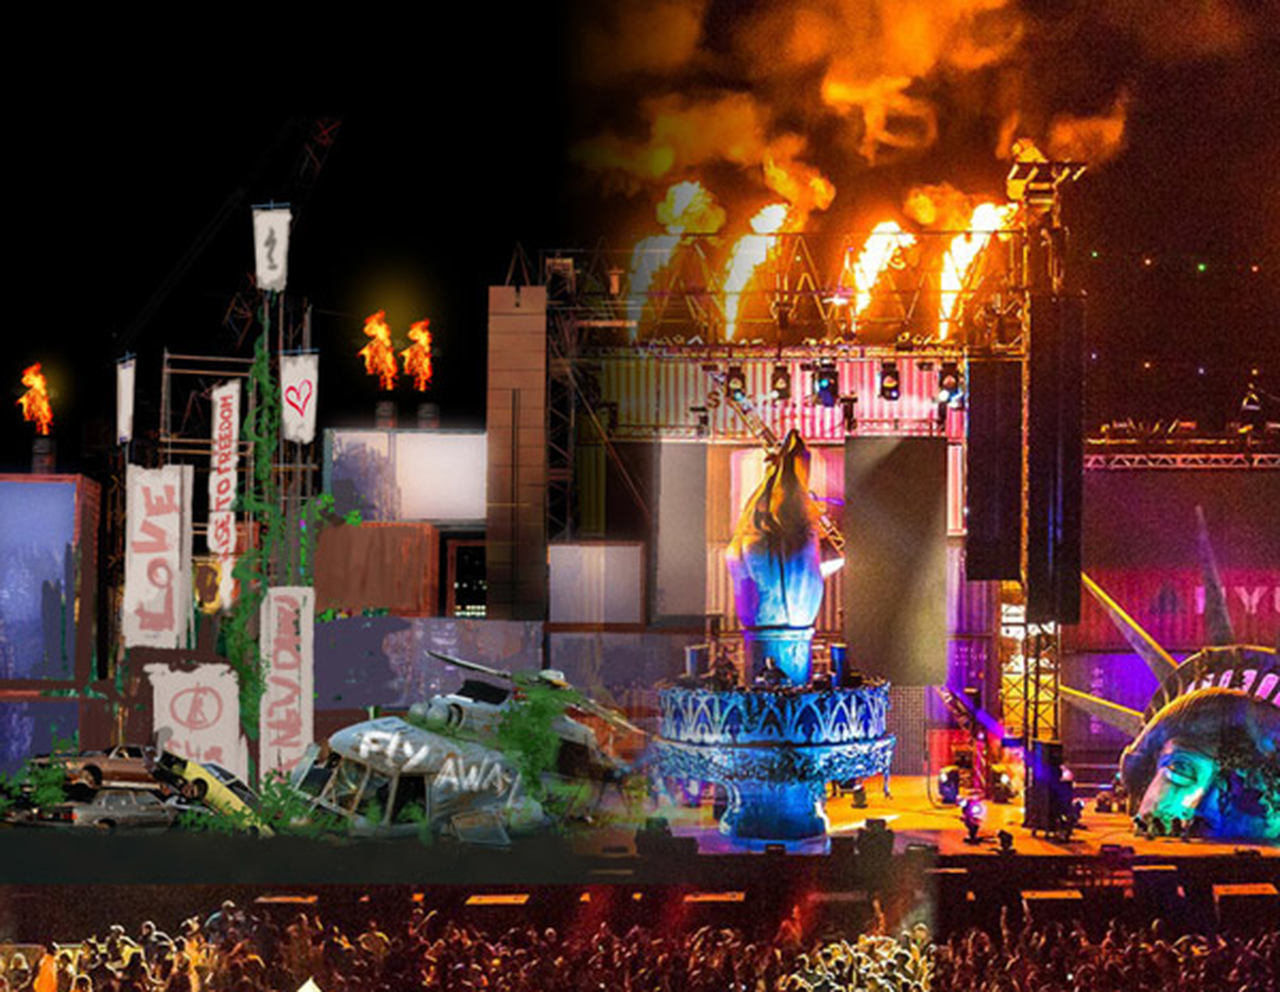 The stage design of the Wasteland stage at EDC 2015